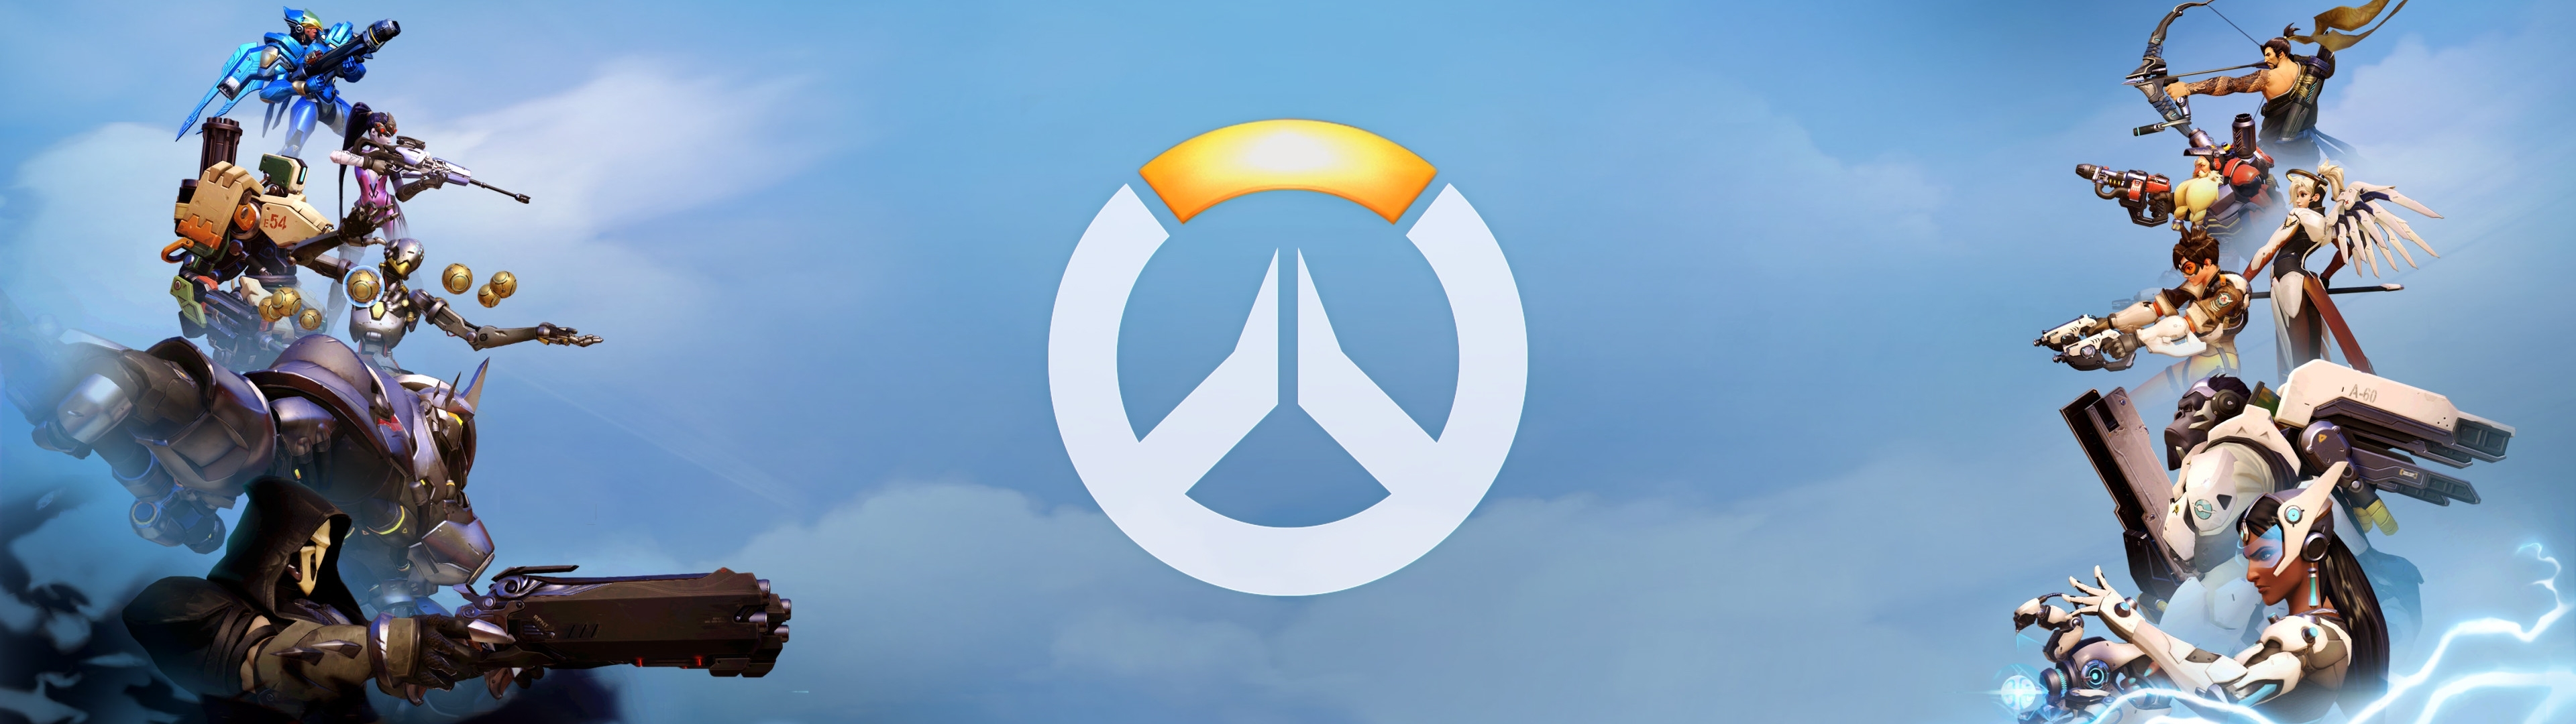 overwatch dual monitor wallpaper (73+ images)